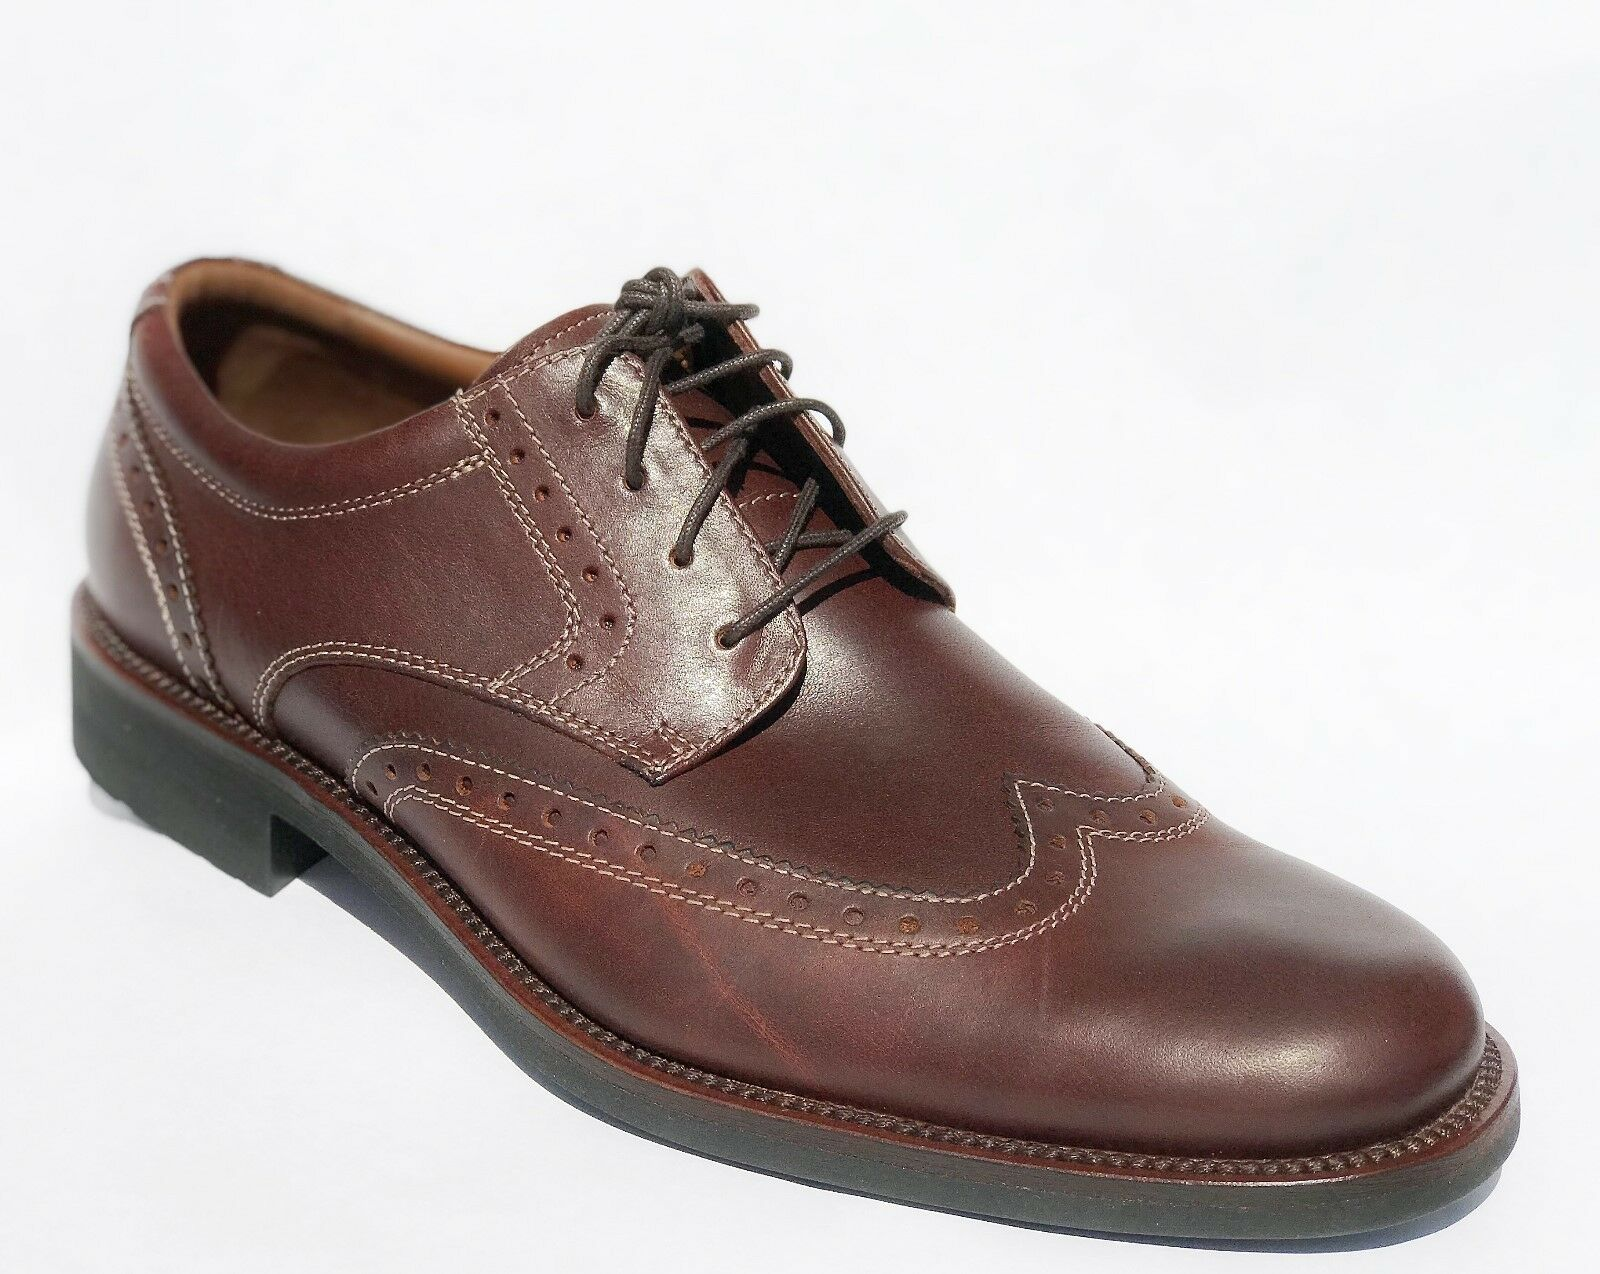 Johnston Murphy Vester Wing Tip Mahogany Pelle Dress Casual Shoes 9 NEW IN BOX